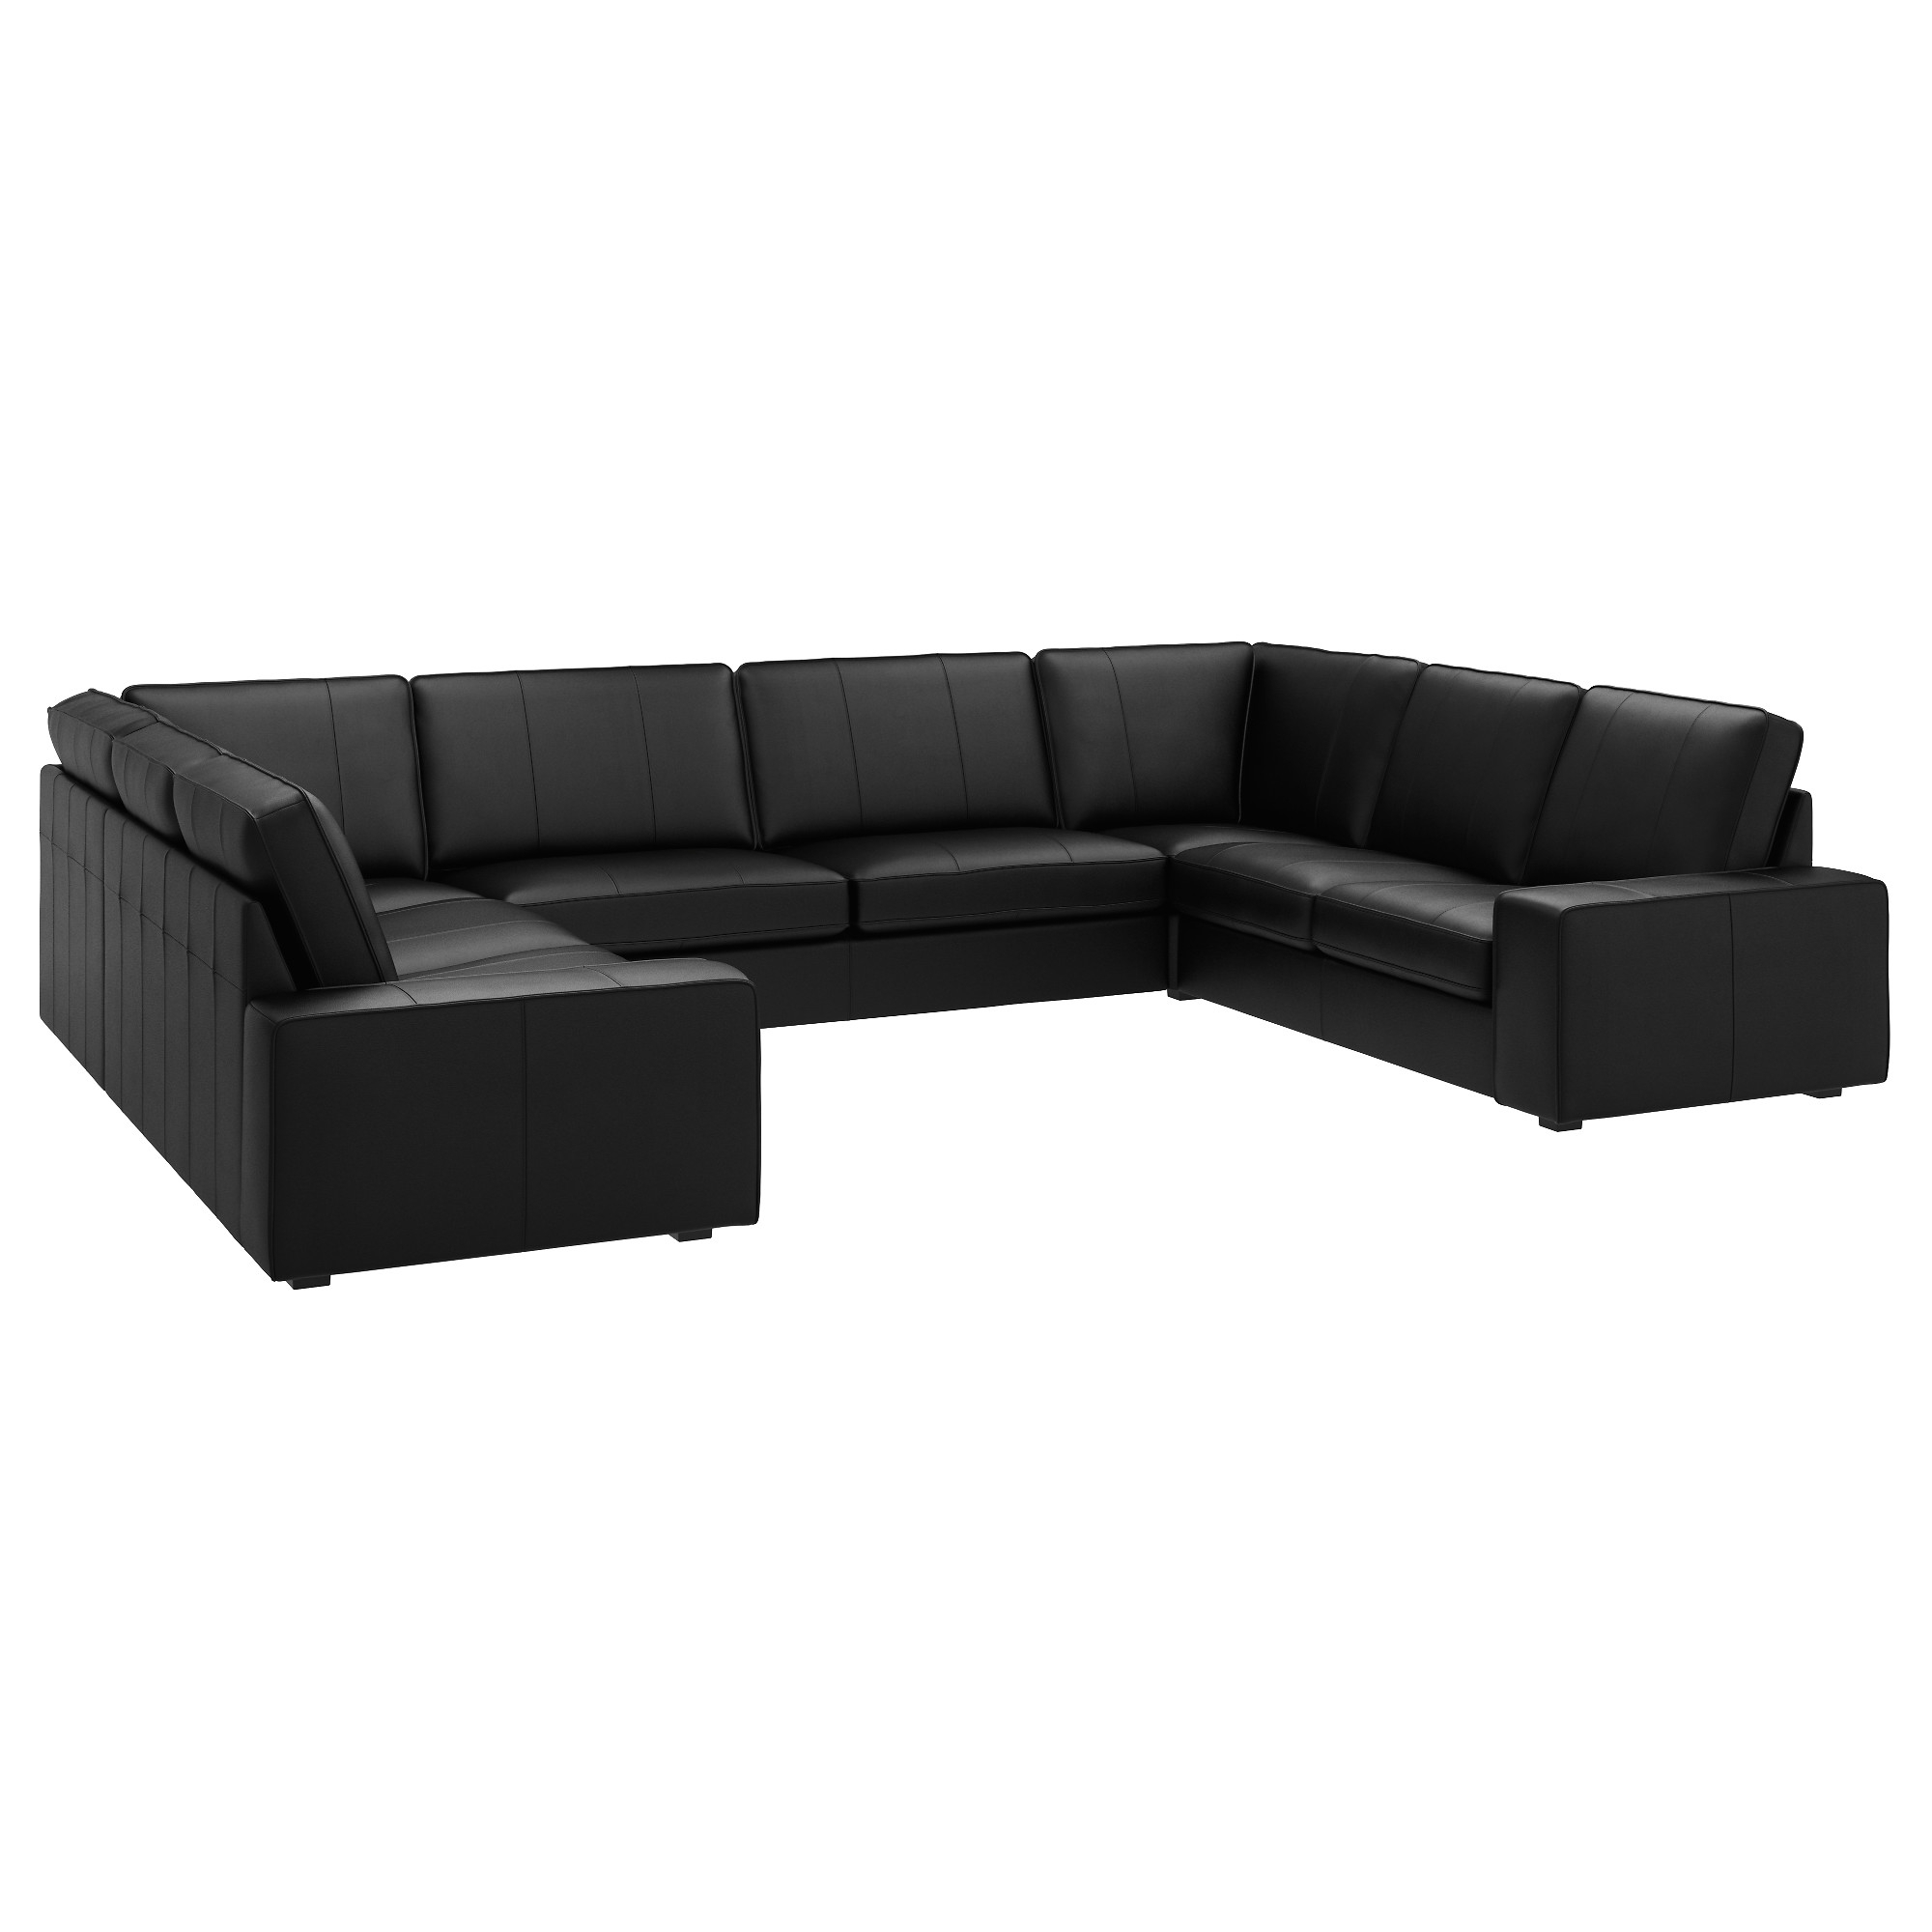 Famous Quatrine Sectional Sofas With Regard To 63 Most Endearing Kivik U Shaped Sofa Seat Grann Bomstad Black S (View 15 of 20)